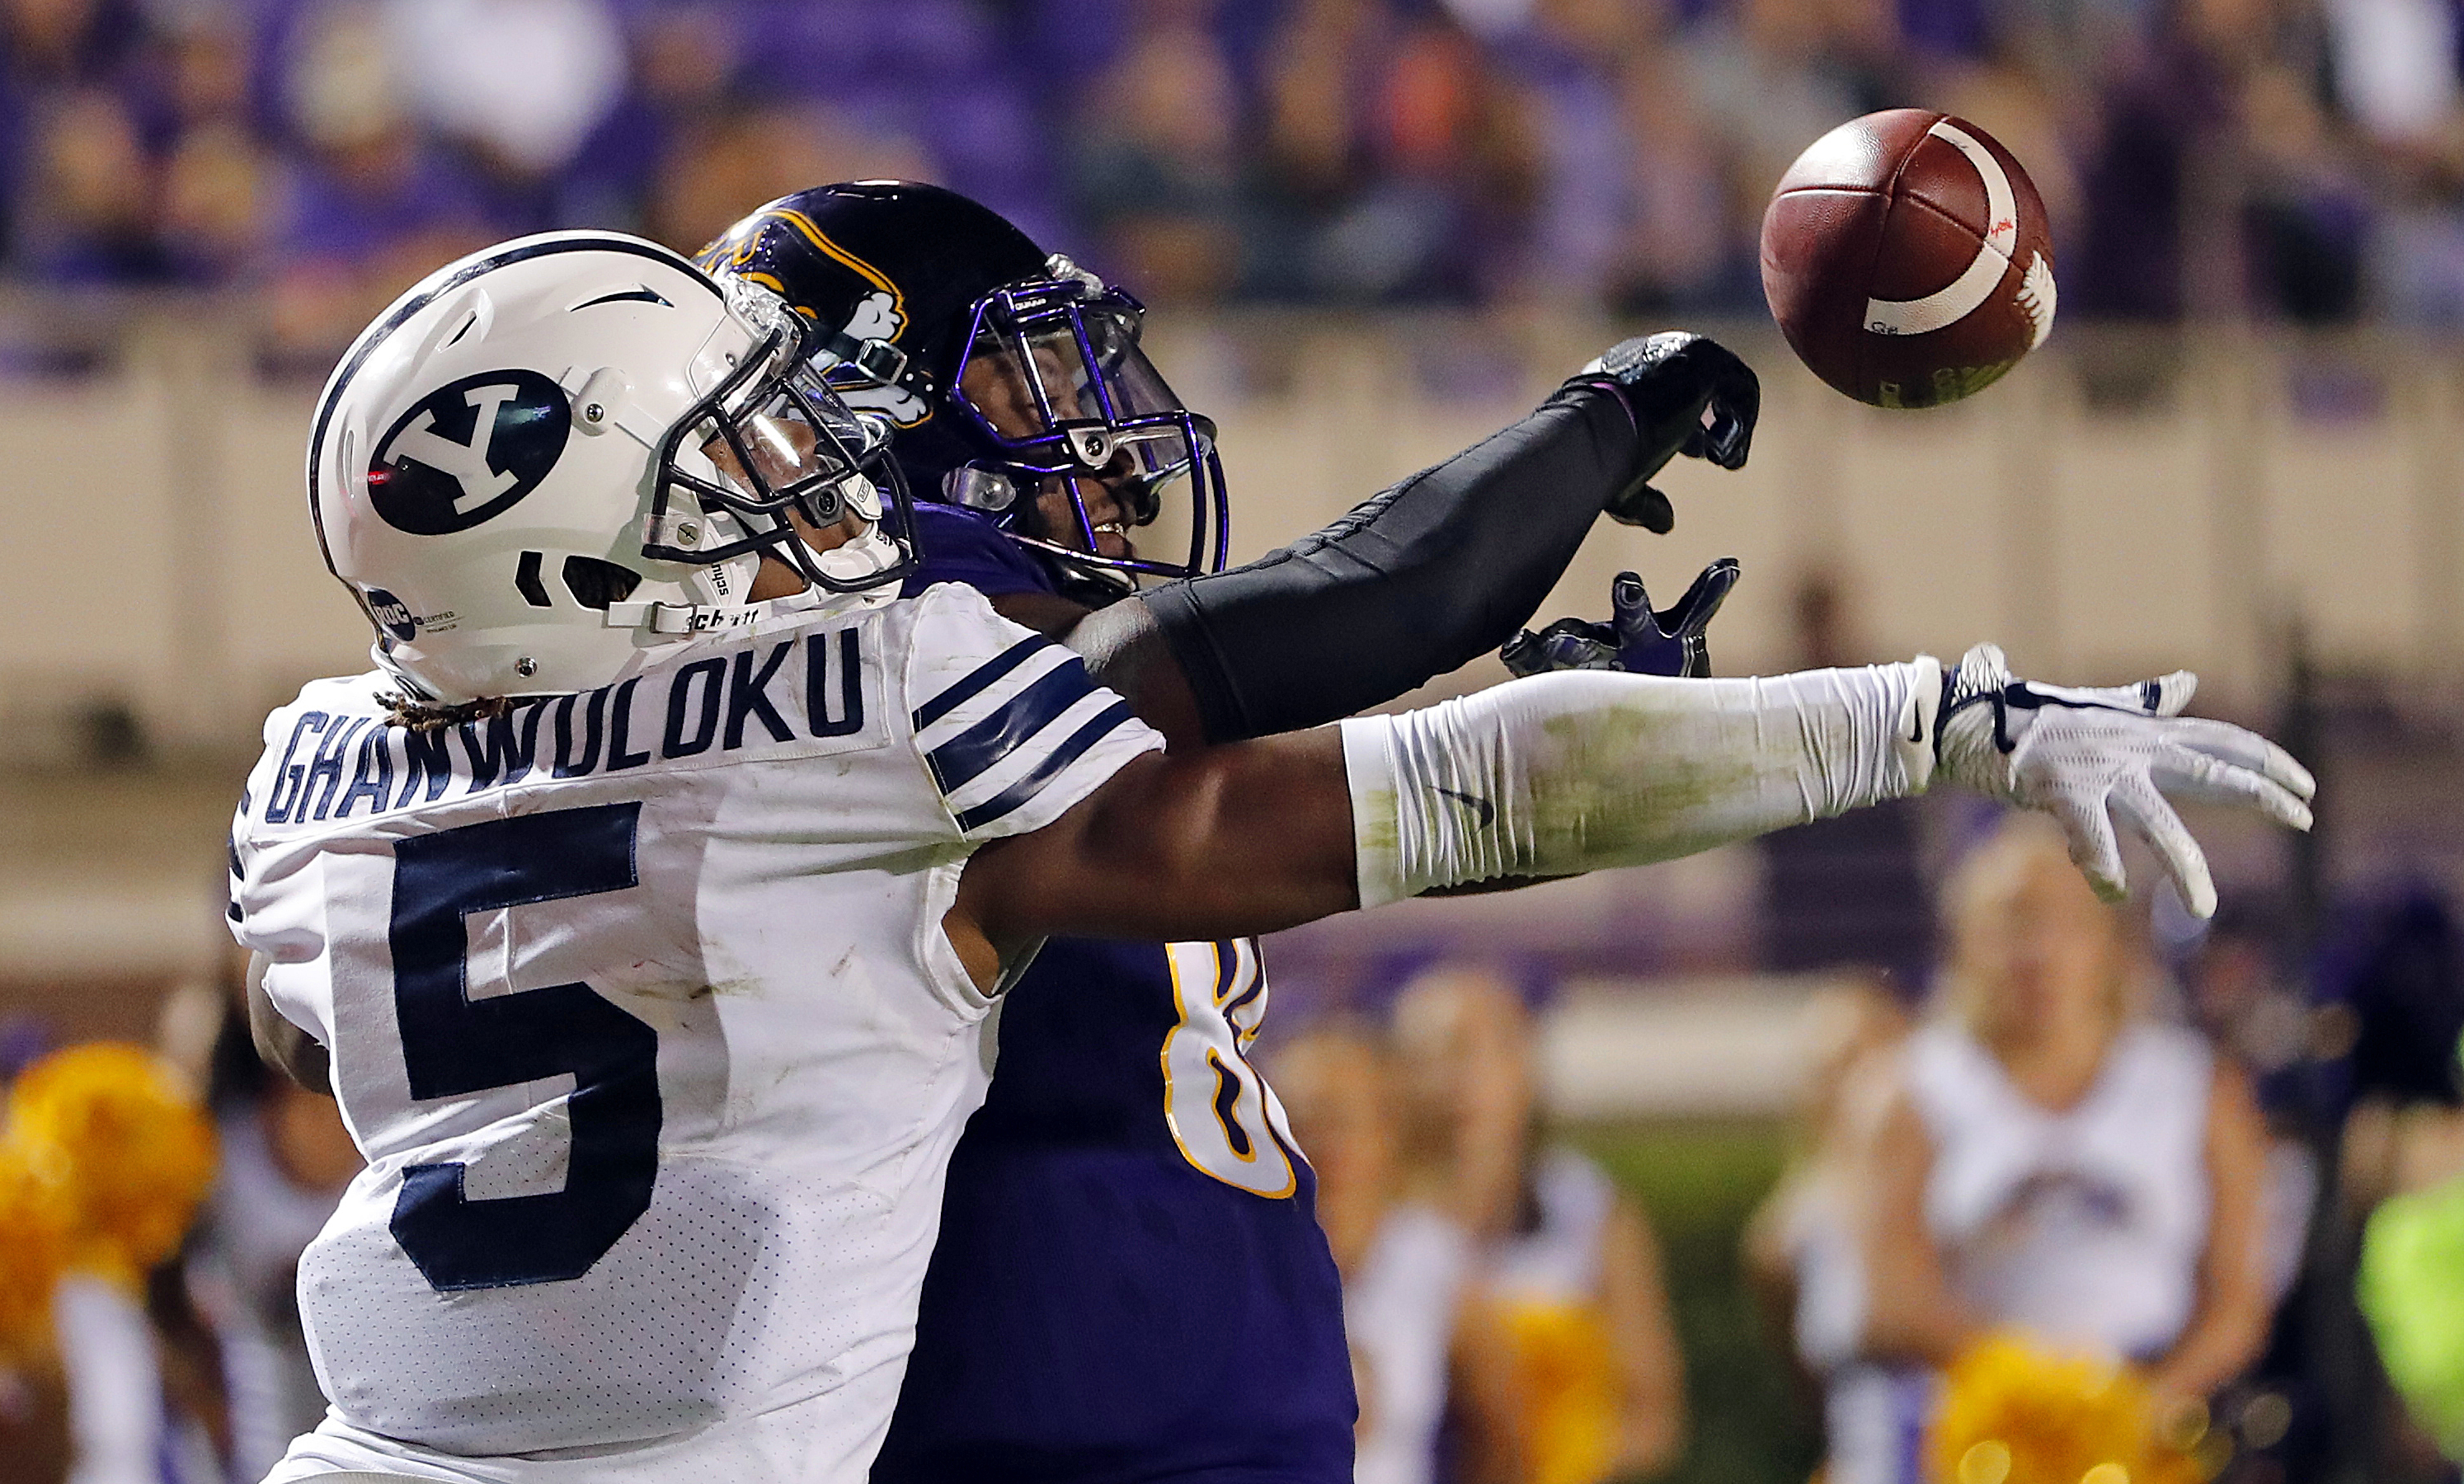 BYU's Dayan Ghanwoloku (5) knocks the ball away from East Carolina's Trevon Brown (88) during the second half of an NCAA college football game in Greenville, N.C., Saturday, Oct. 21, 2017.